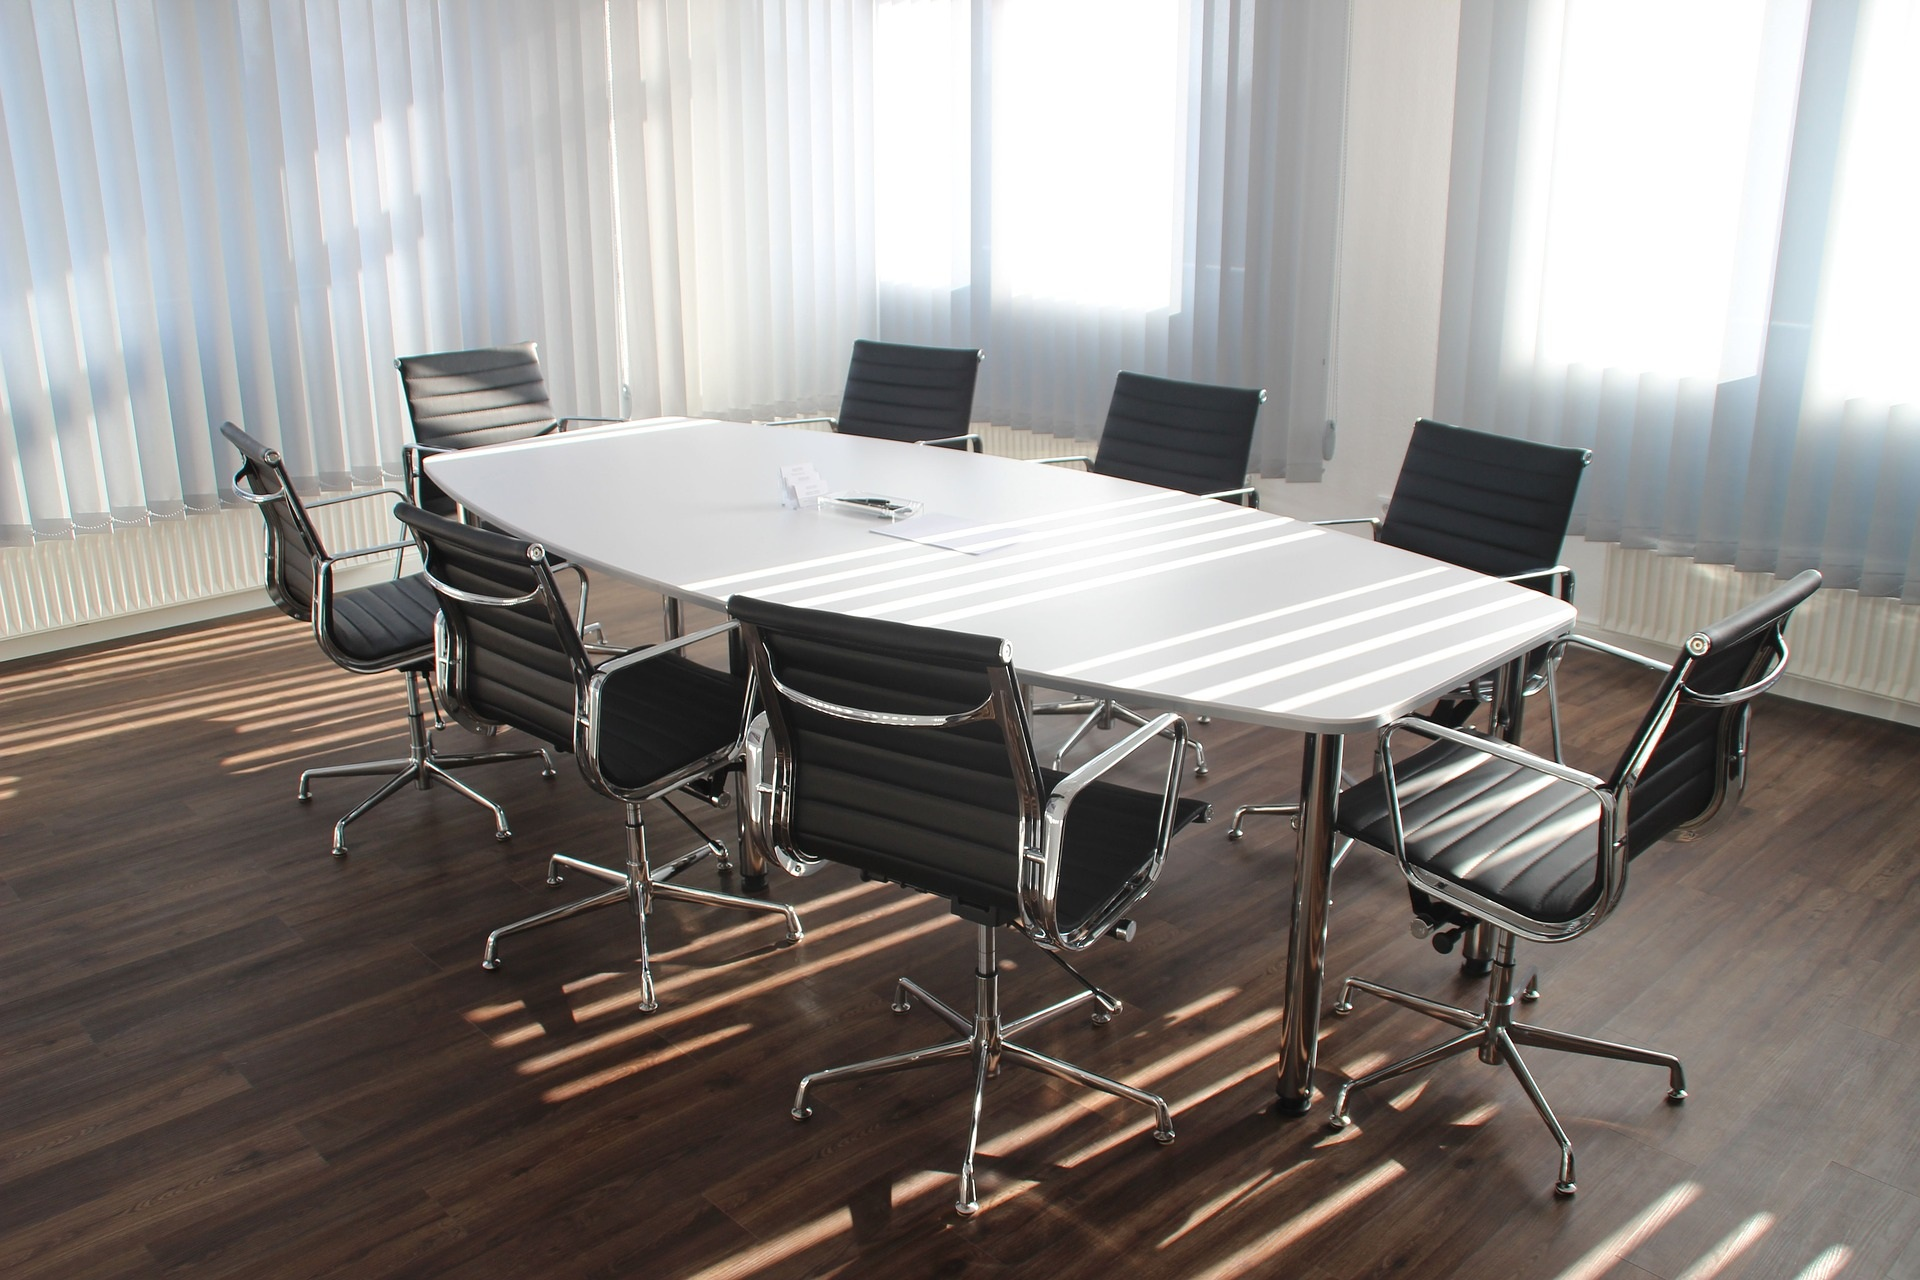 Board Performance - Governing a company presents many unique challenges, from record keeping to performance assessments. Sopow Law and Consulting can make governing painless by: advising on the development of strategic plans, providing intuitive systems for agendas and minutes, and implementing self-assessment procedures for the Board of Directors.